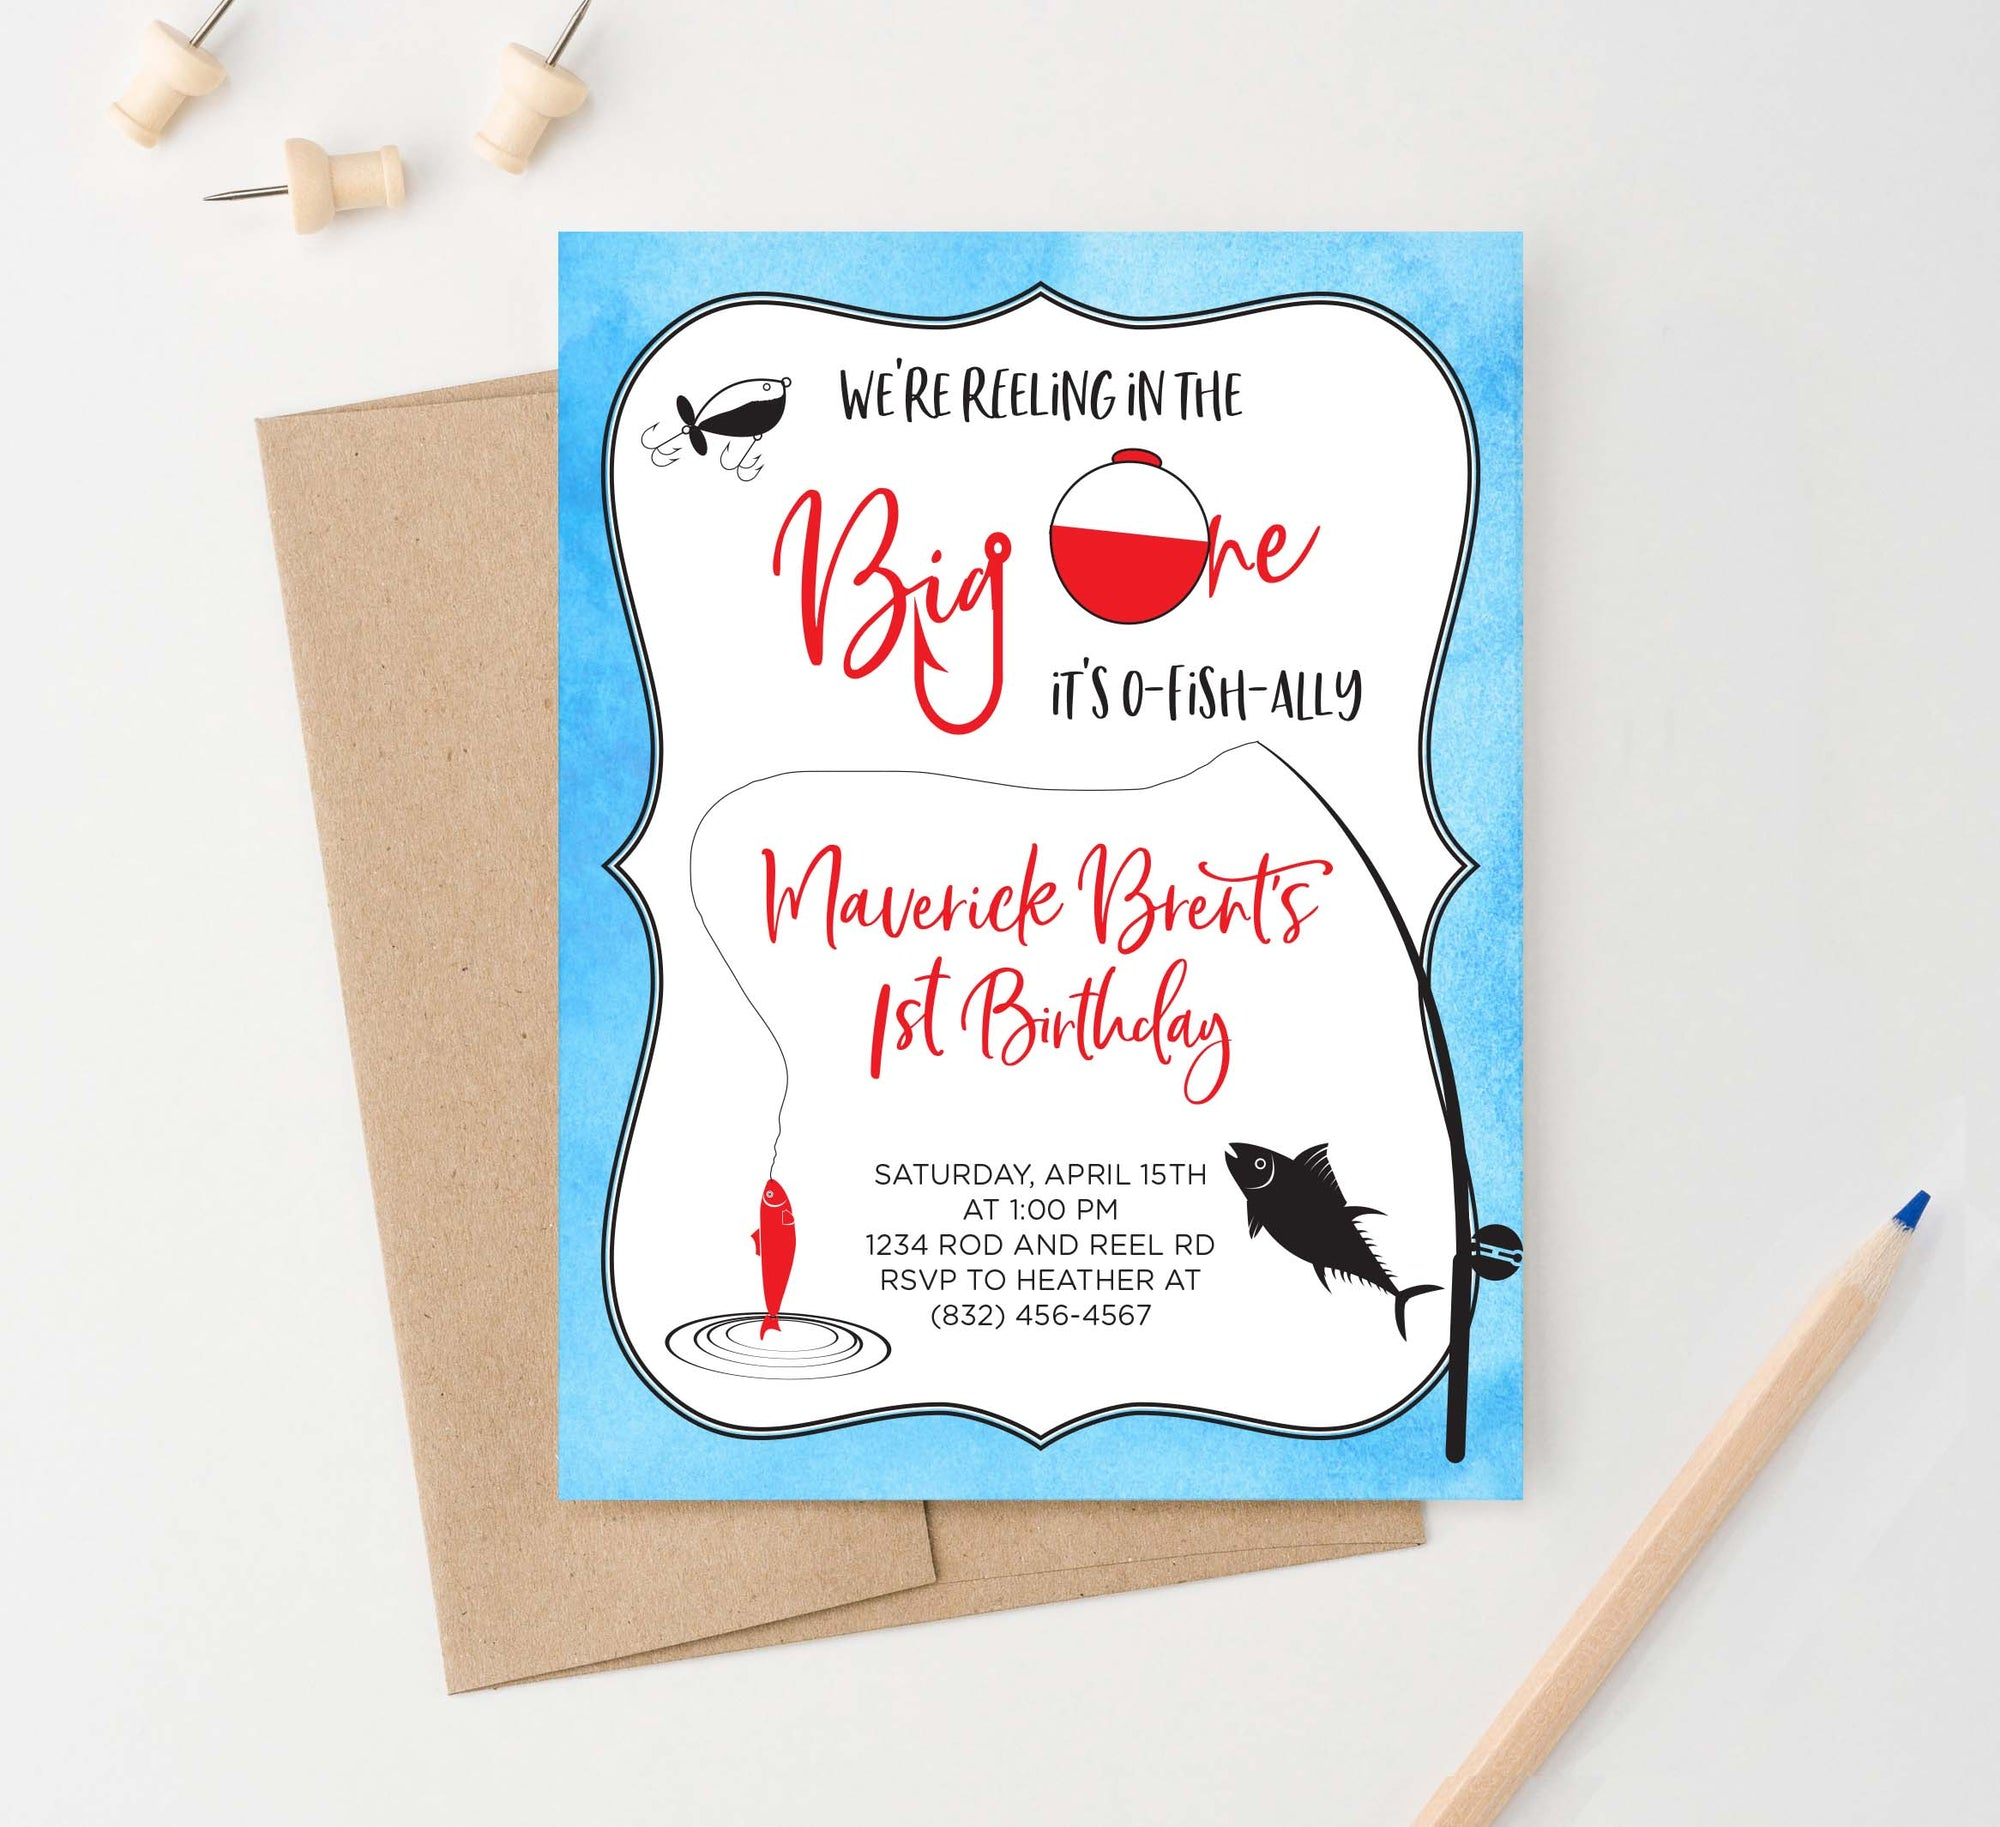 BI093 fishing birthday party invites personalized fish big one 1